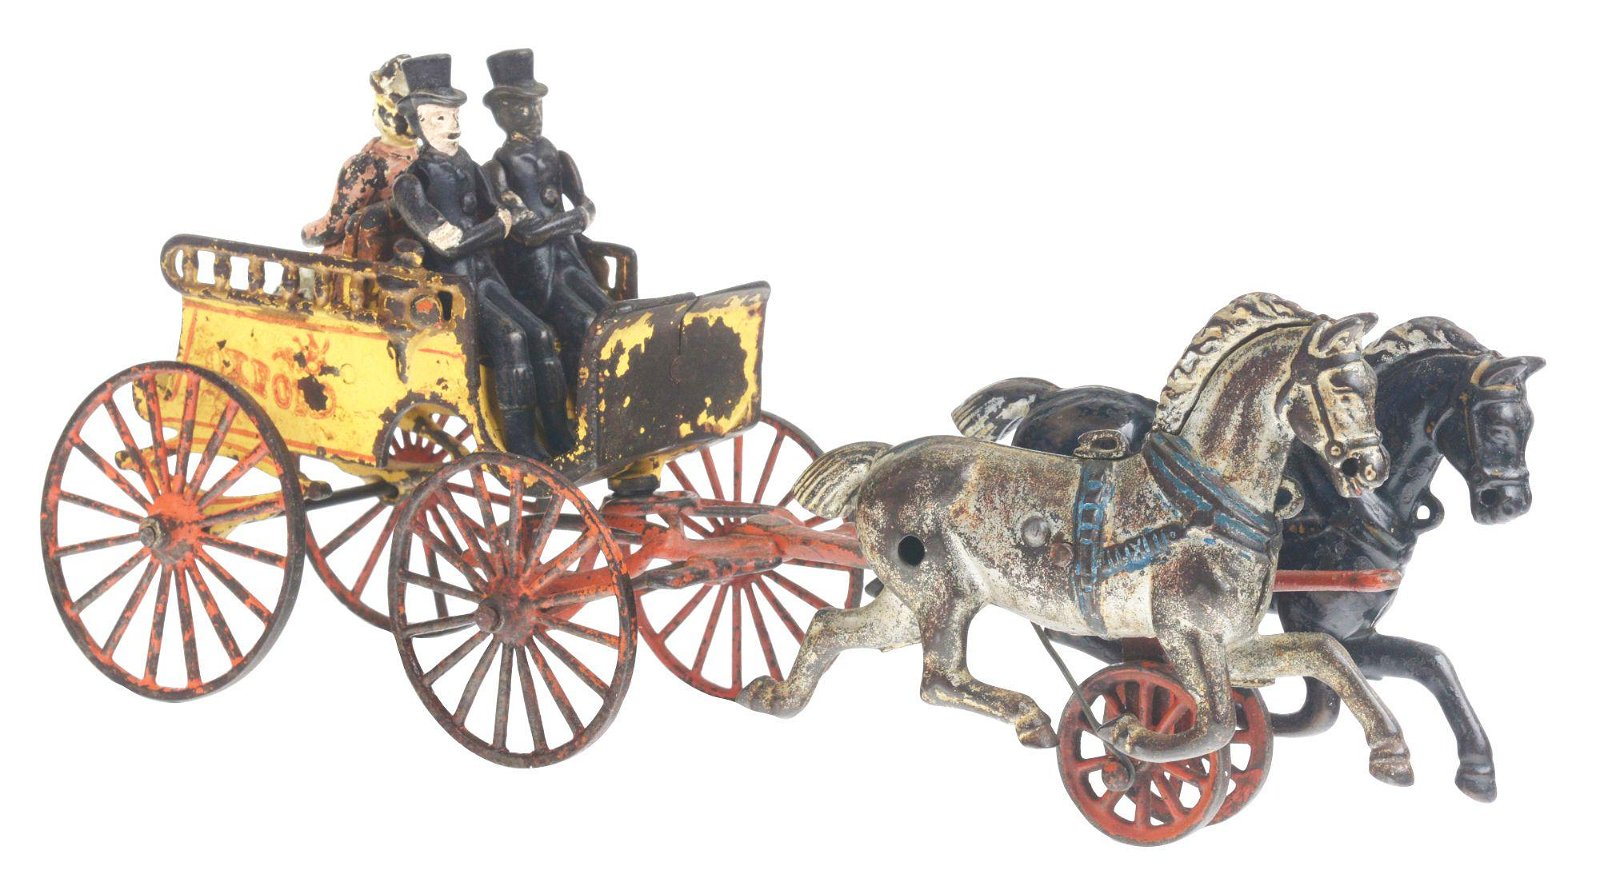 KENTON CAST IRON OXFORD BACK TO BACK HORSE DRAWN TRAP.